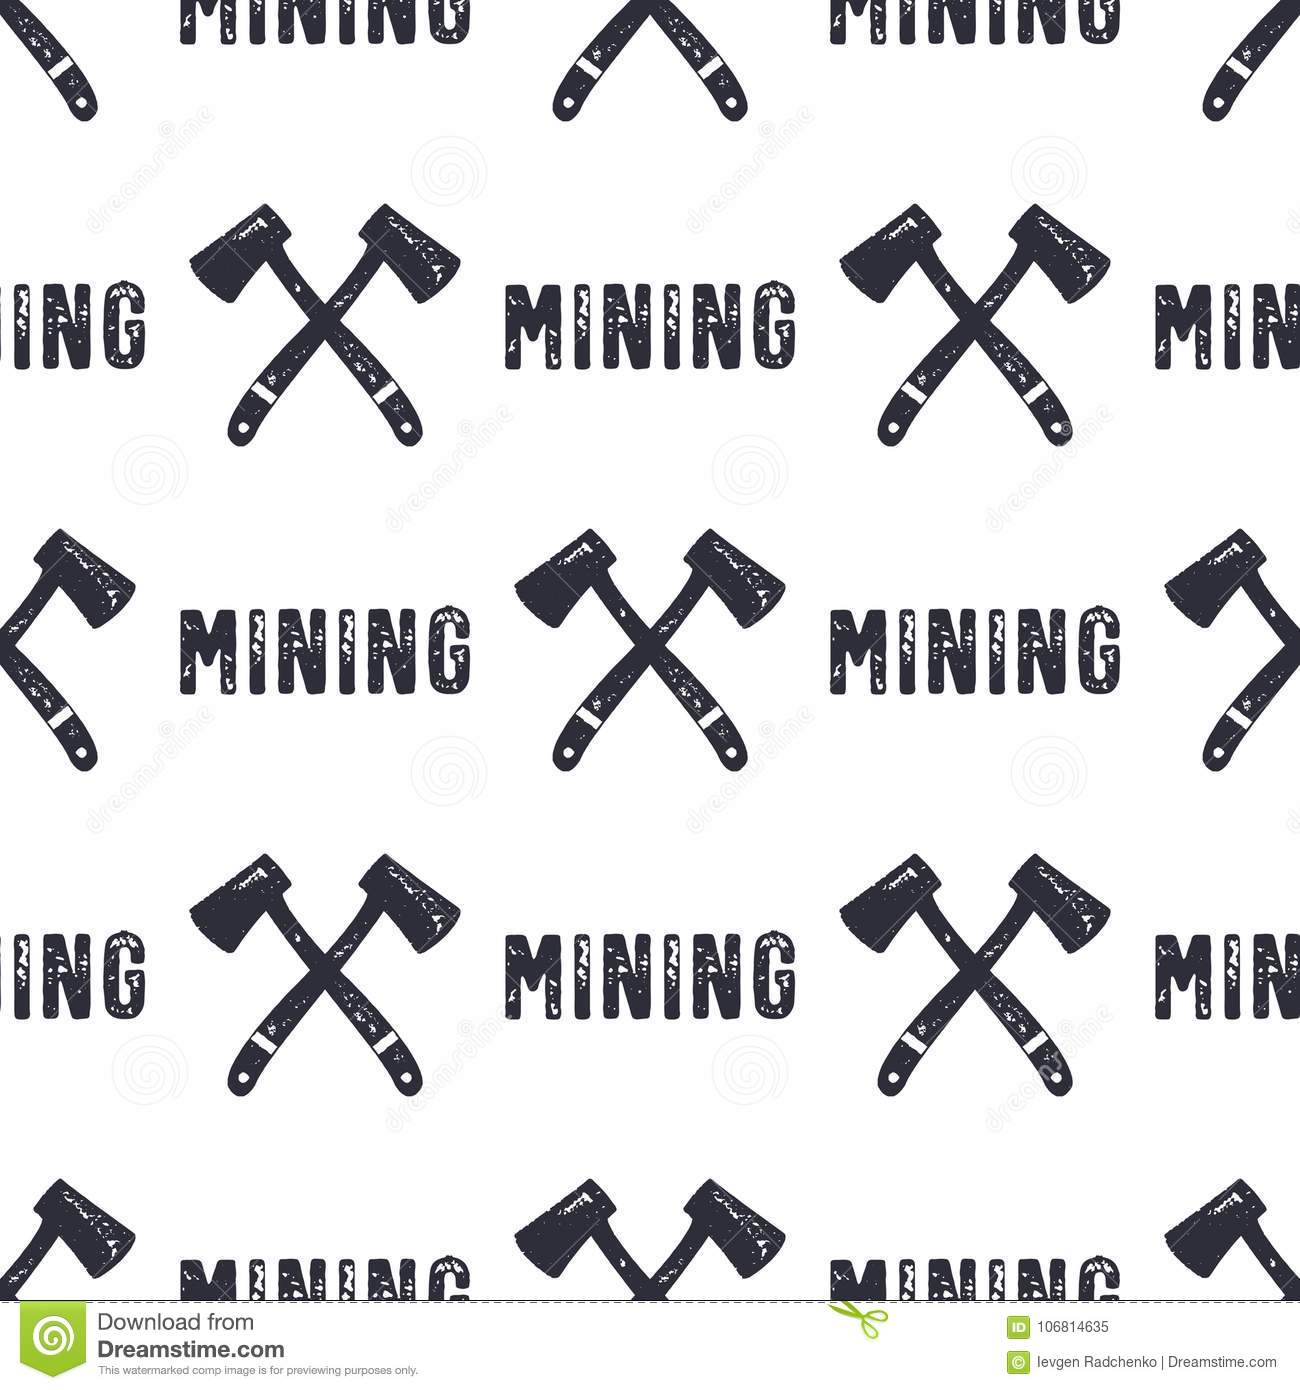 Hand drawn mining seamless background can be used as classicd hand drawn mining seamless background can be used as classicd esignation gold silver mining etc or modern bitcoin or another cryptocurrency ccuart Image collections